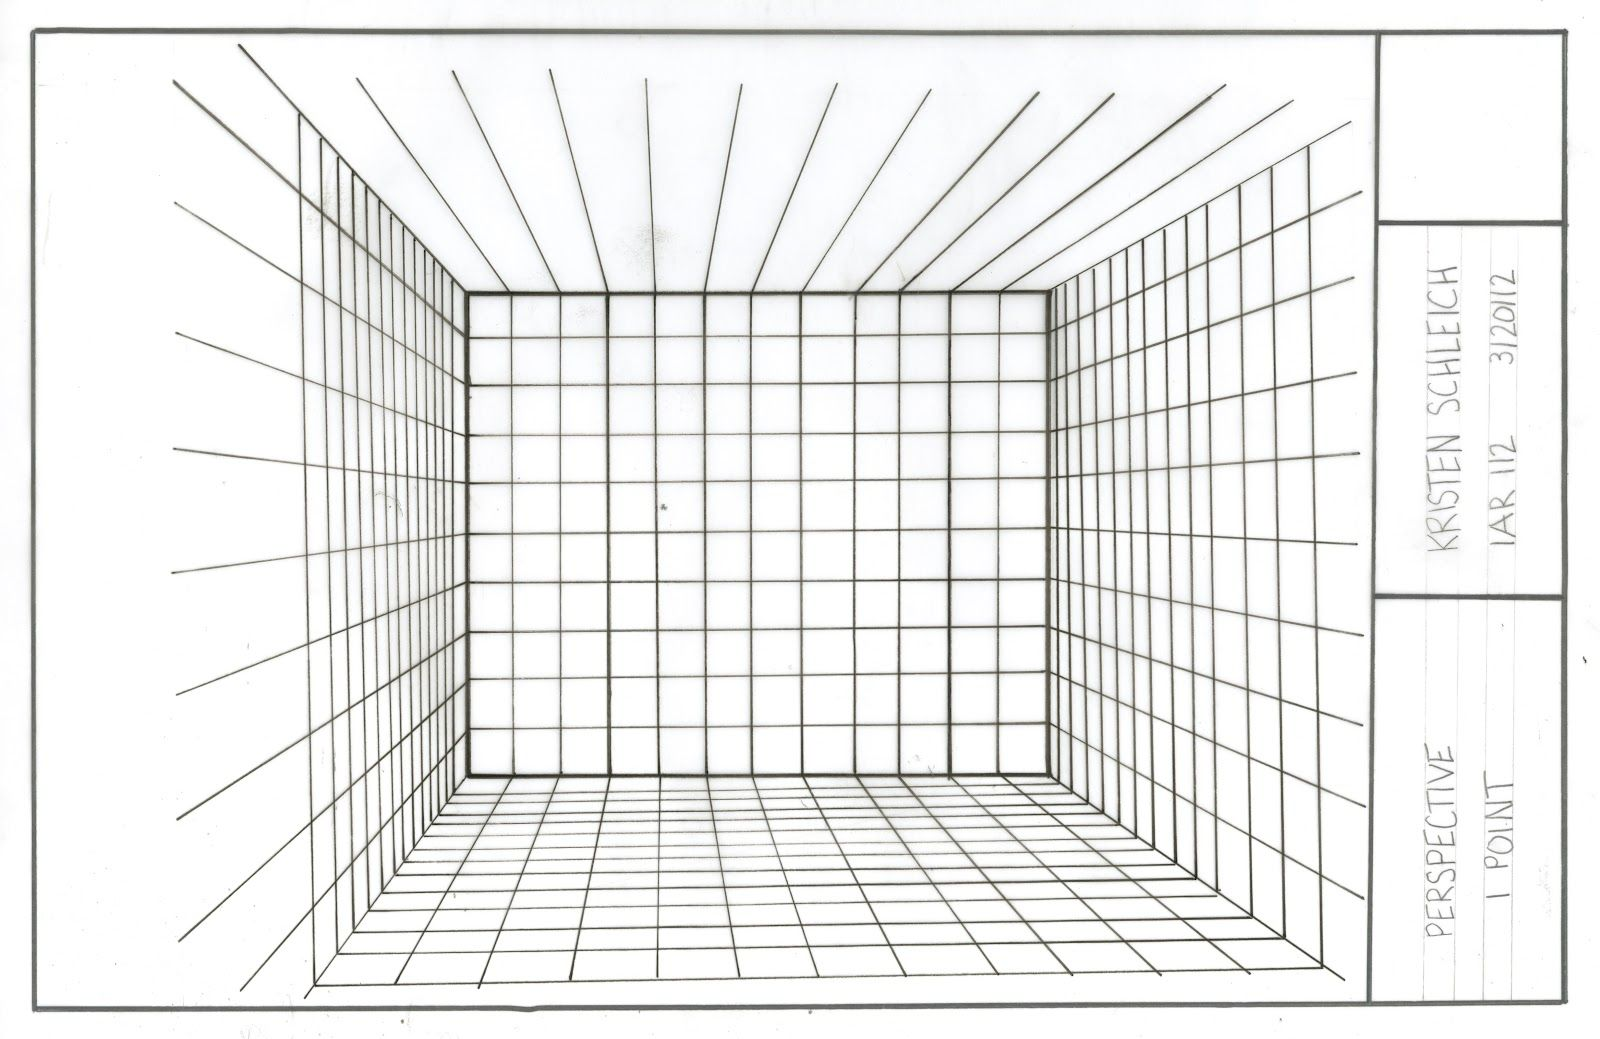 Interior Architecture Through the Eyes of Me: Perspective